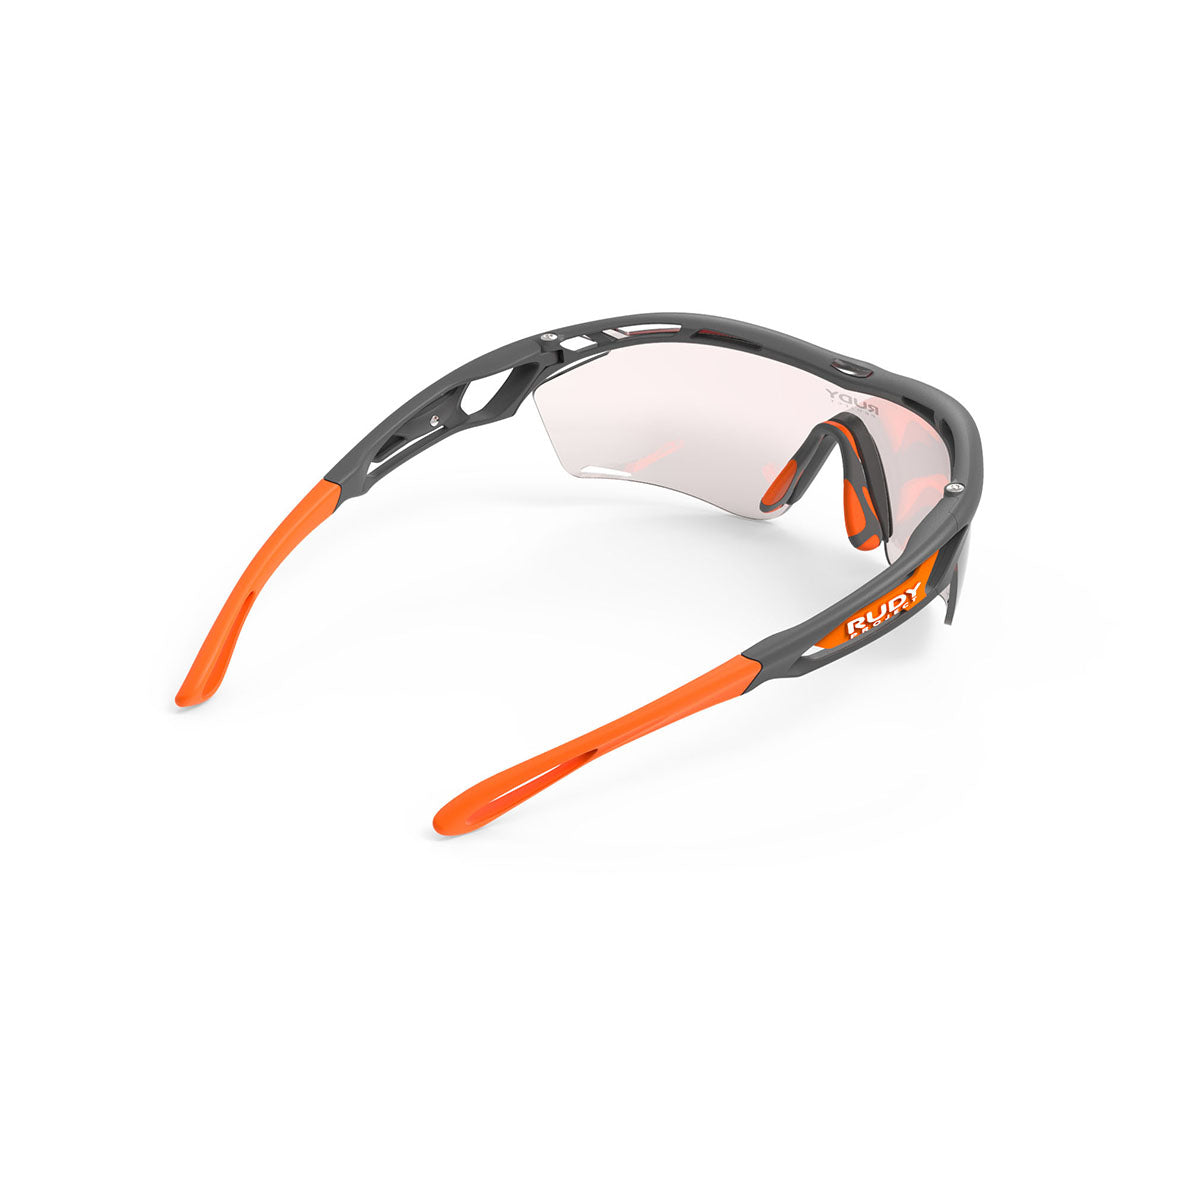 Rudy Project - Tralyx Golf - frame color: Pyombo Matte - lens color: IMPACTX-2 PHOTOCHROMIC PHOTOCHROMIC CLEAR TO RED LENSES - photo angle: Top Back Angle Variant Hover Image